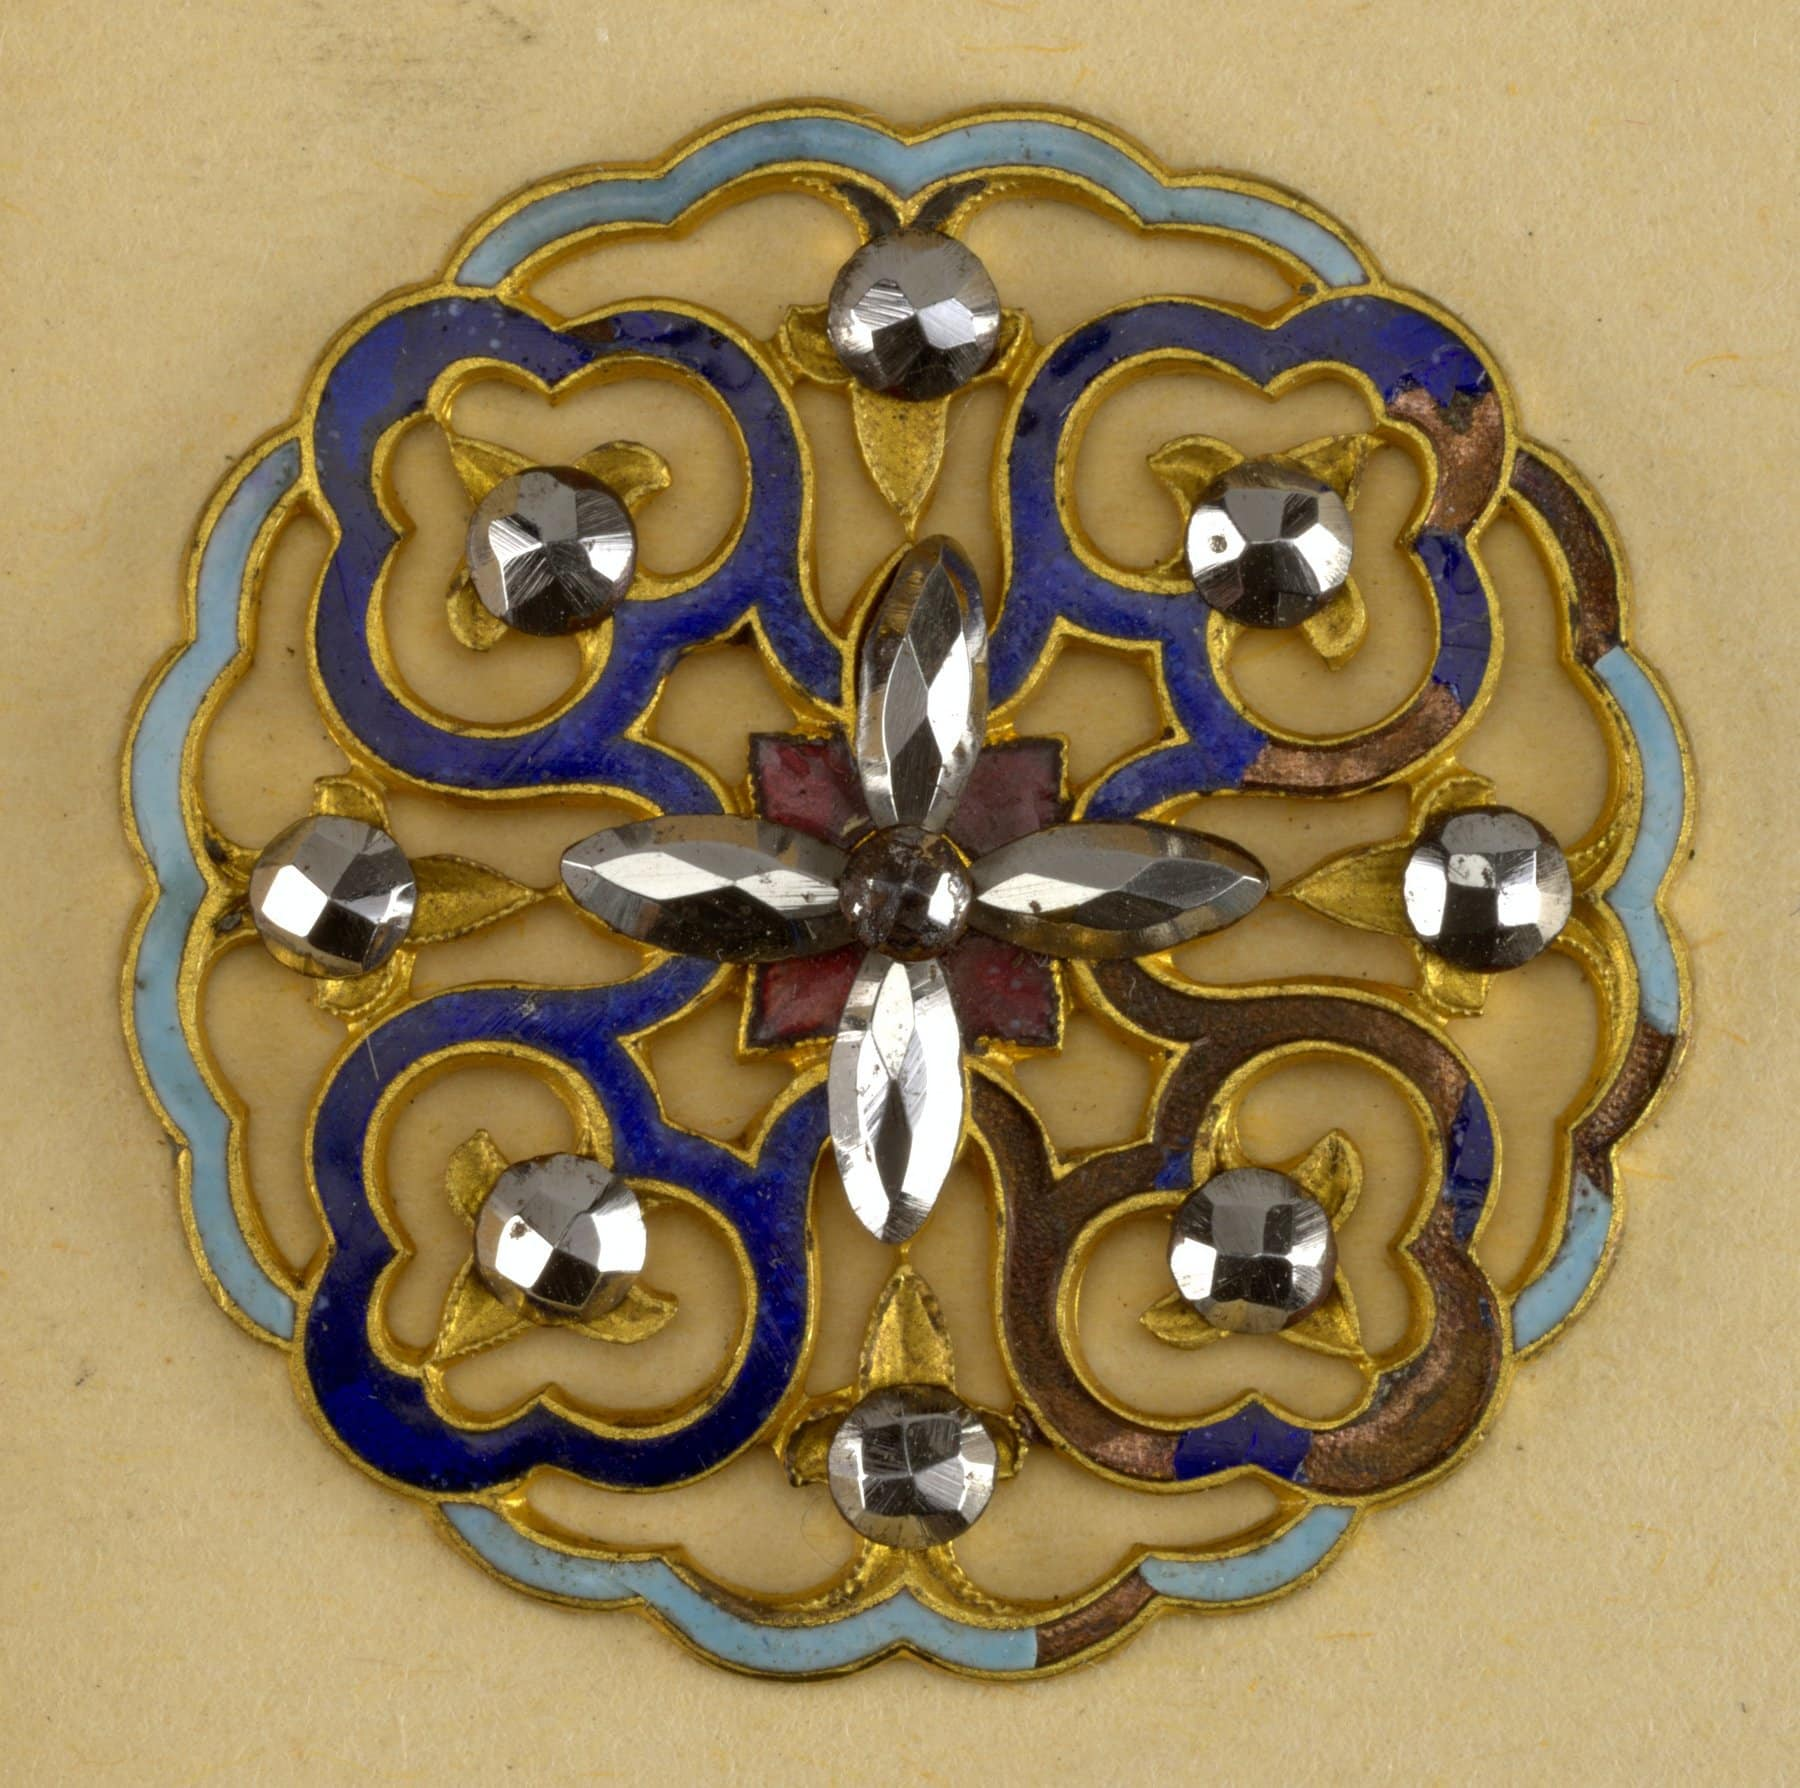 Late 19th century buttons with design of four flowers